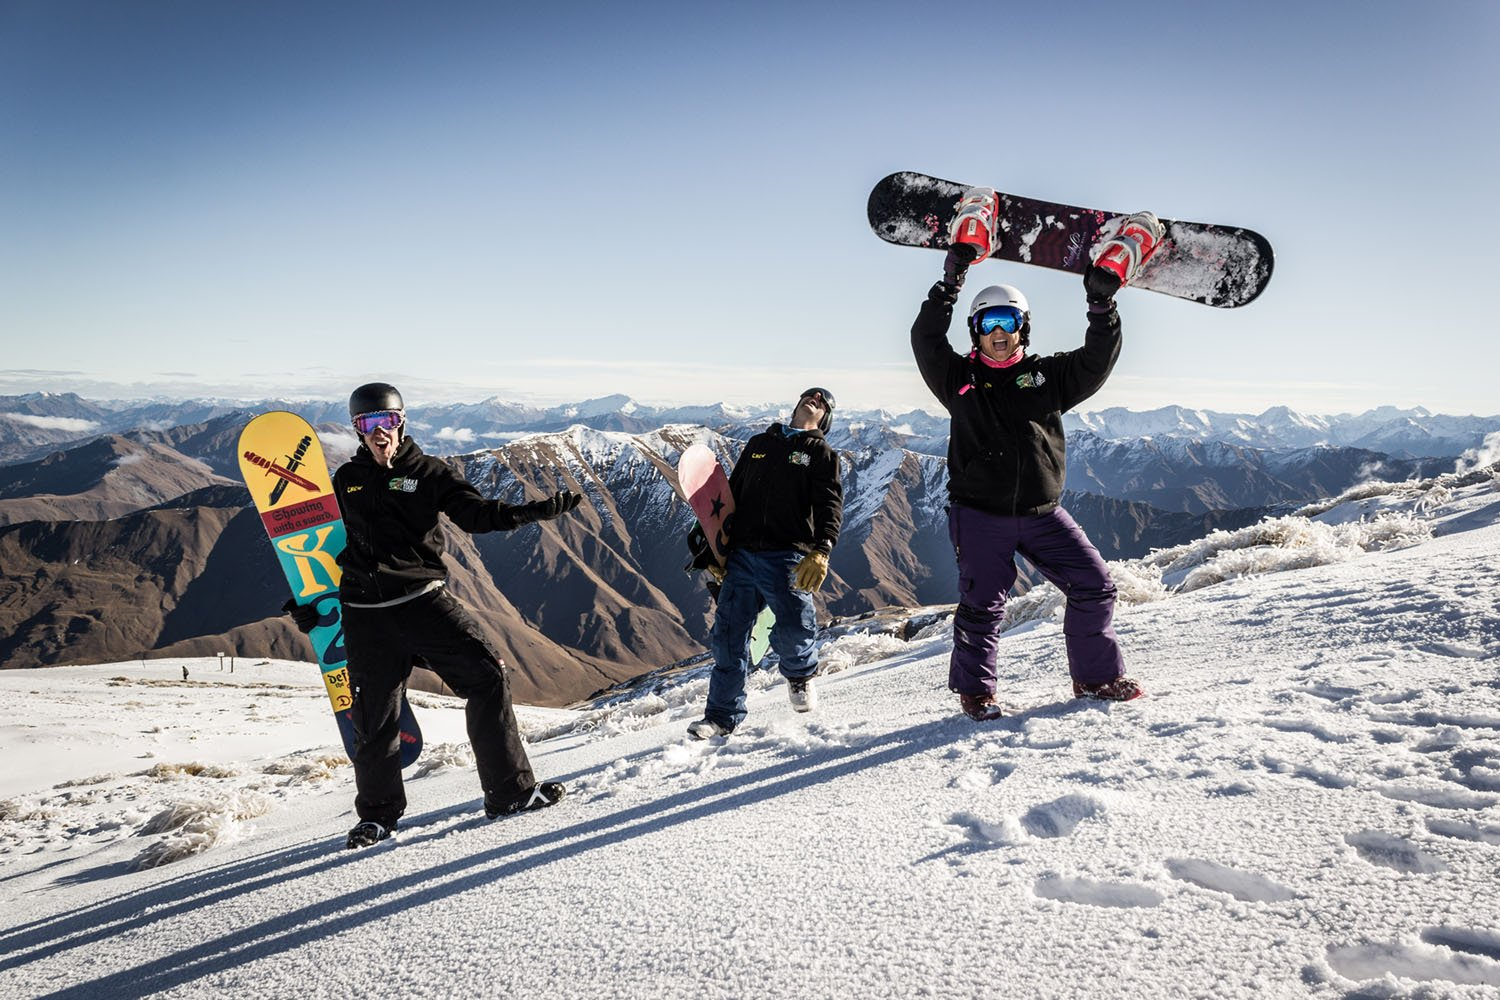 Snowboarding in NZ